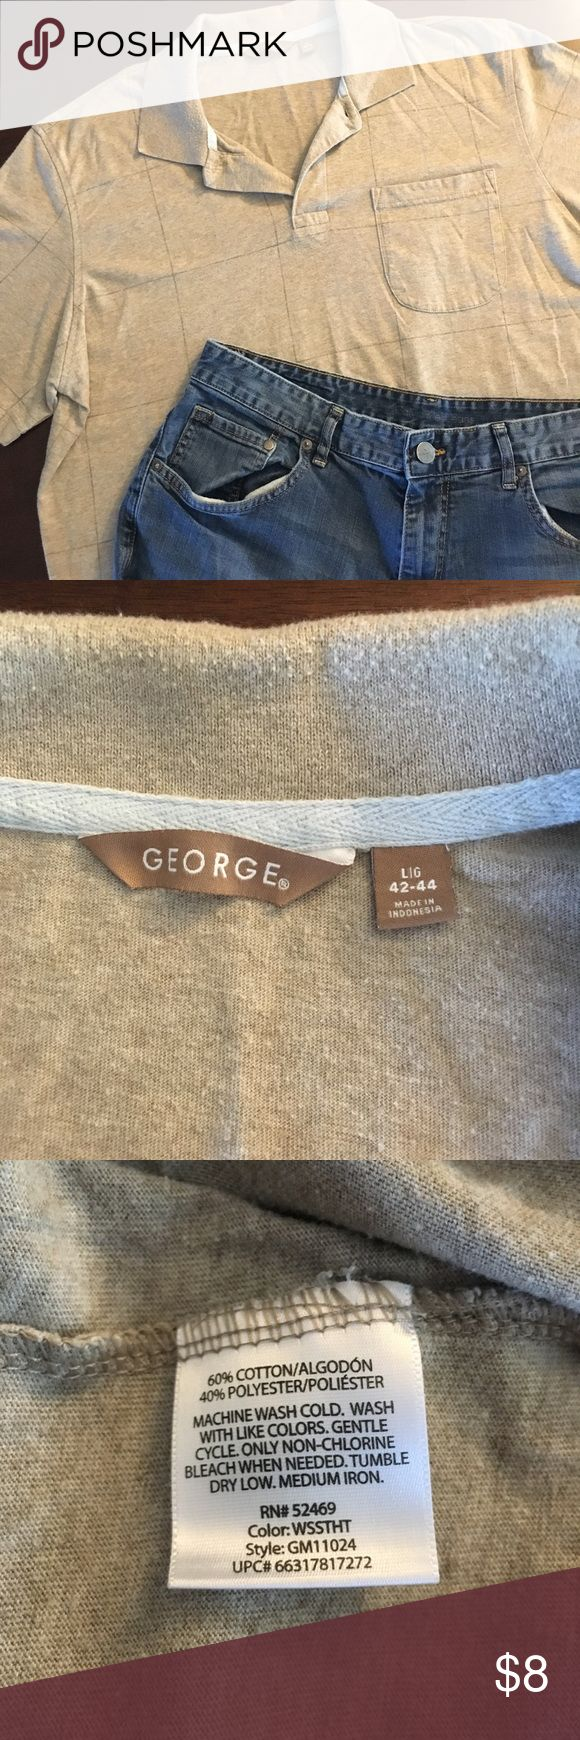 George Polo light brown top with a darker brown and light blue plaid pattern with pocket in the front.  has been worn but no signs of flaws so in good condition!  • open to offers 💰 • no trades ❌ • feel free to ask any questions 🤔 • interested in multiple items?  I can whip up a bundle for you, just ask! 🎁 George Shirts Polos